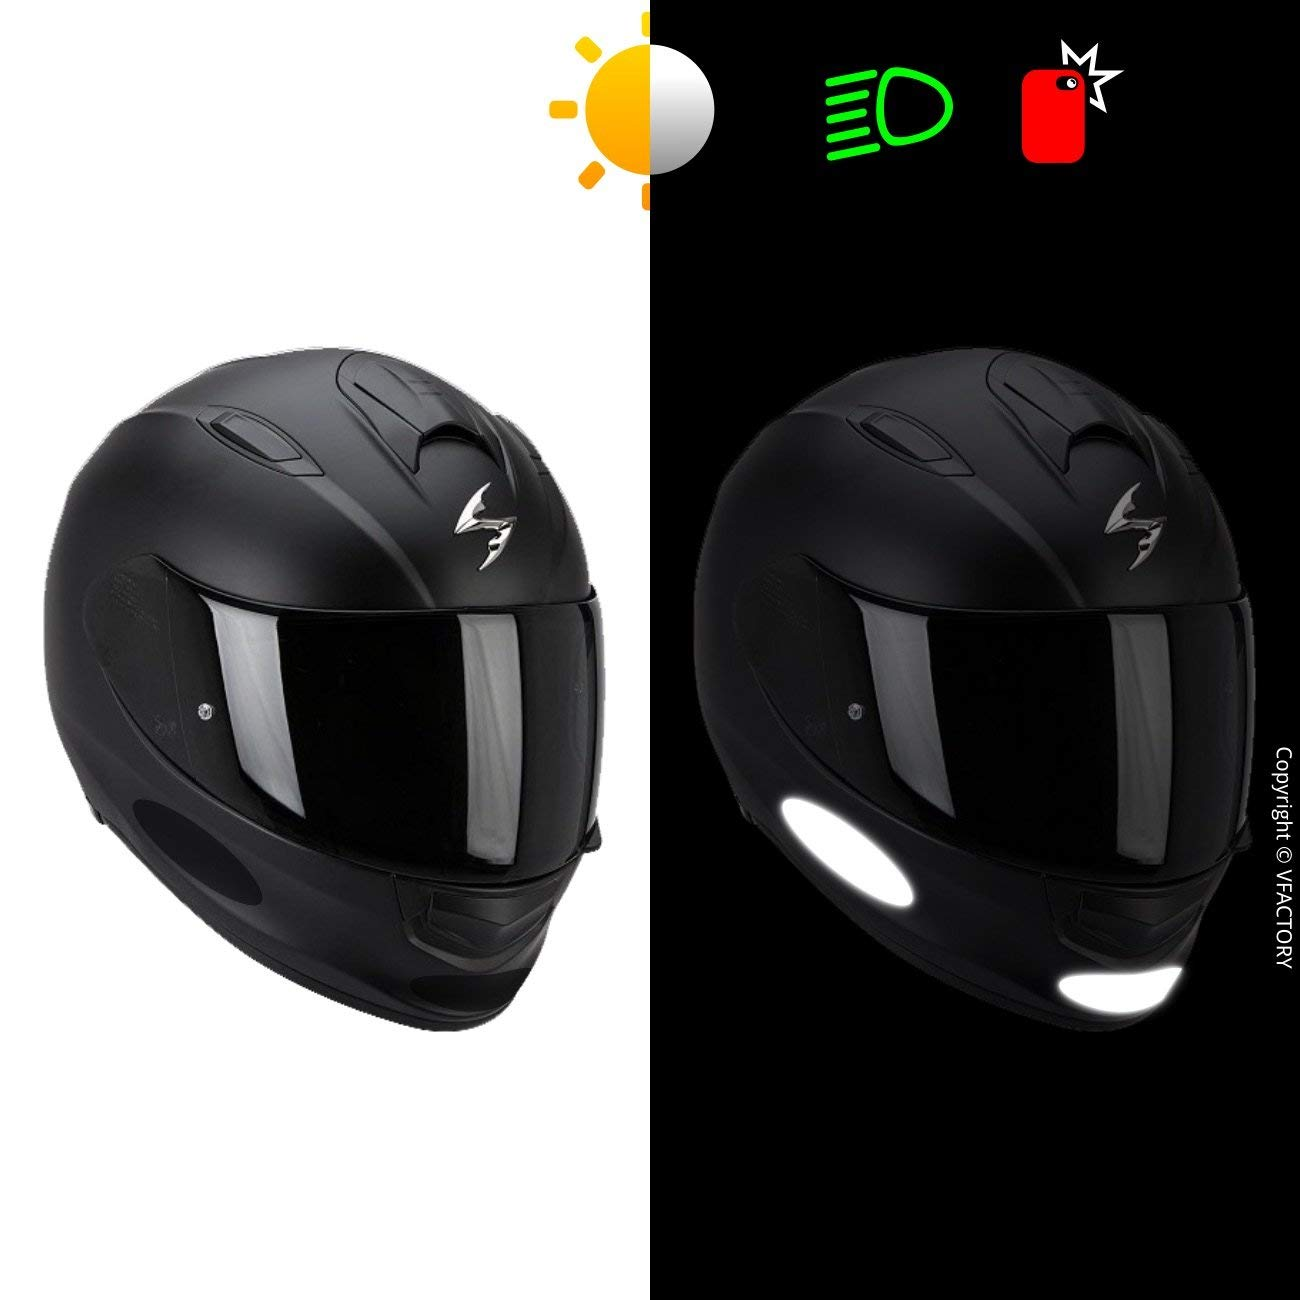 Night visibility safety B REFLECTIVE, 8,5 x 2,7 cm Adhesive for Motorcycle Helmet//Scooter//Bike//Stroller//Buggy//Toys 4 retro reflective stickers kit 4 Pack Black